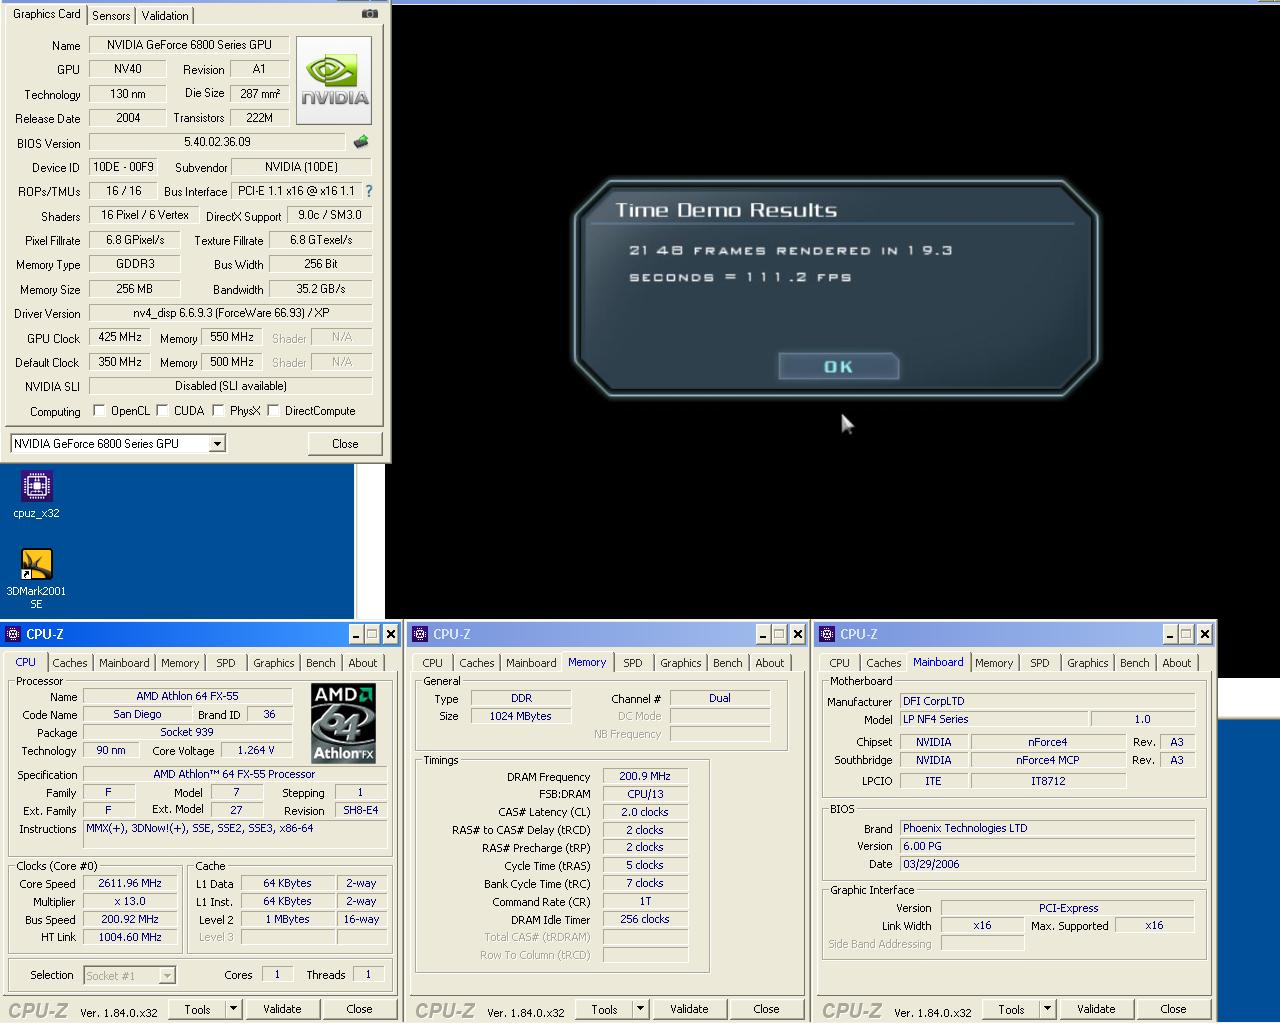 FX55 0.09 um 2x512MB DDR400 2 2 2 5 1T Geforce 6800GT 425 1100 doom3 1024 Ultra.JPG